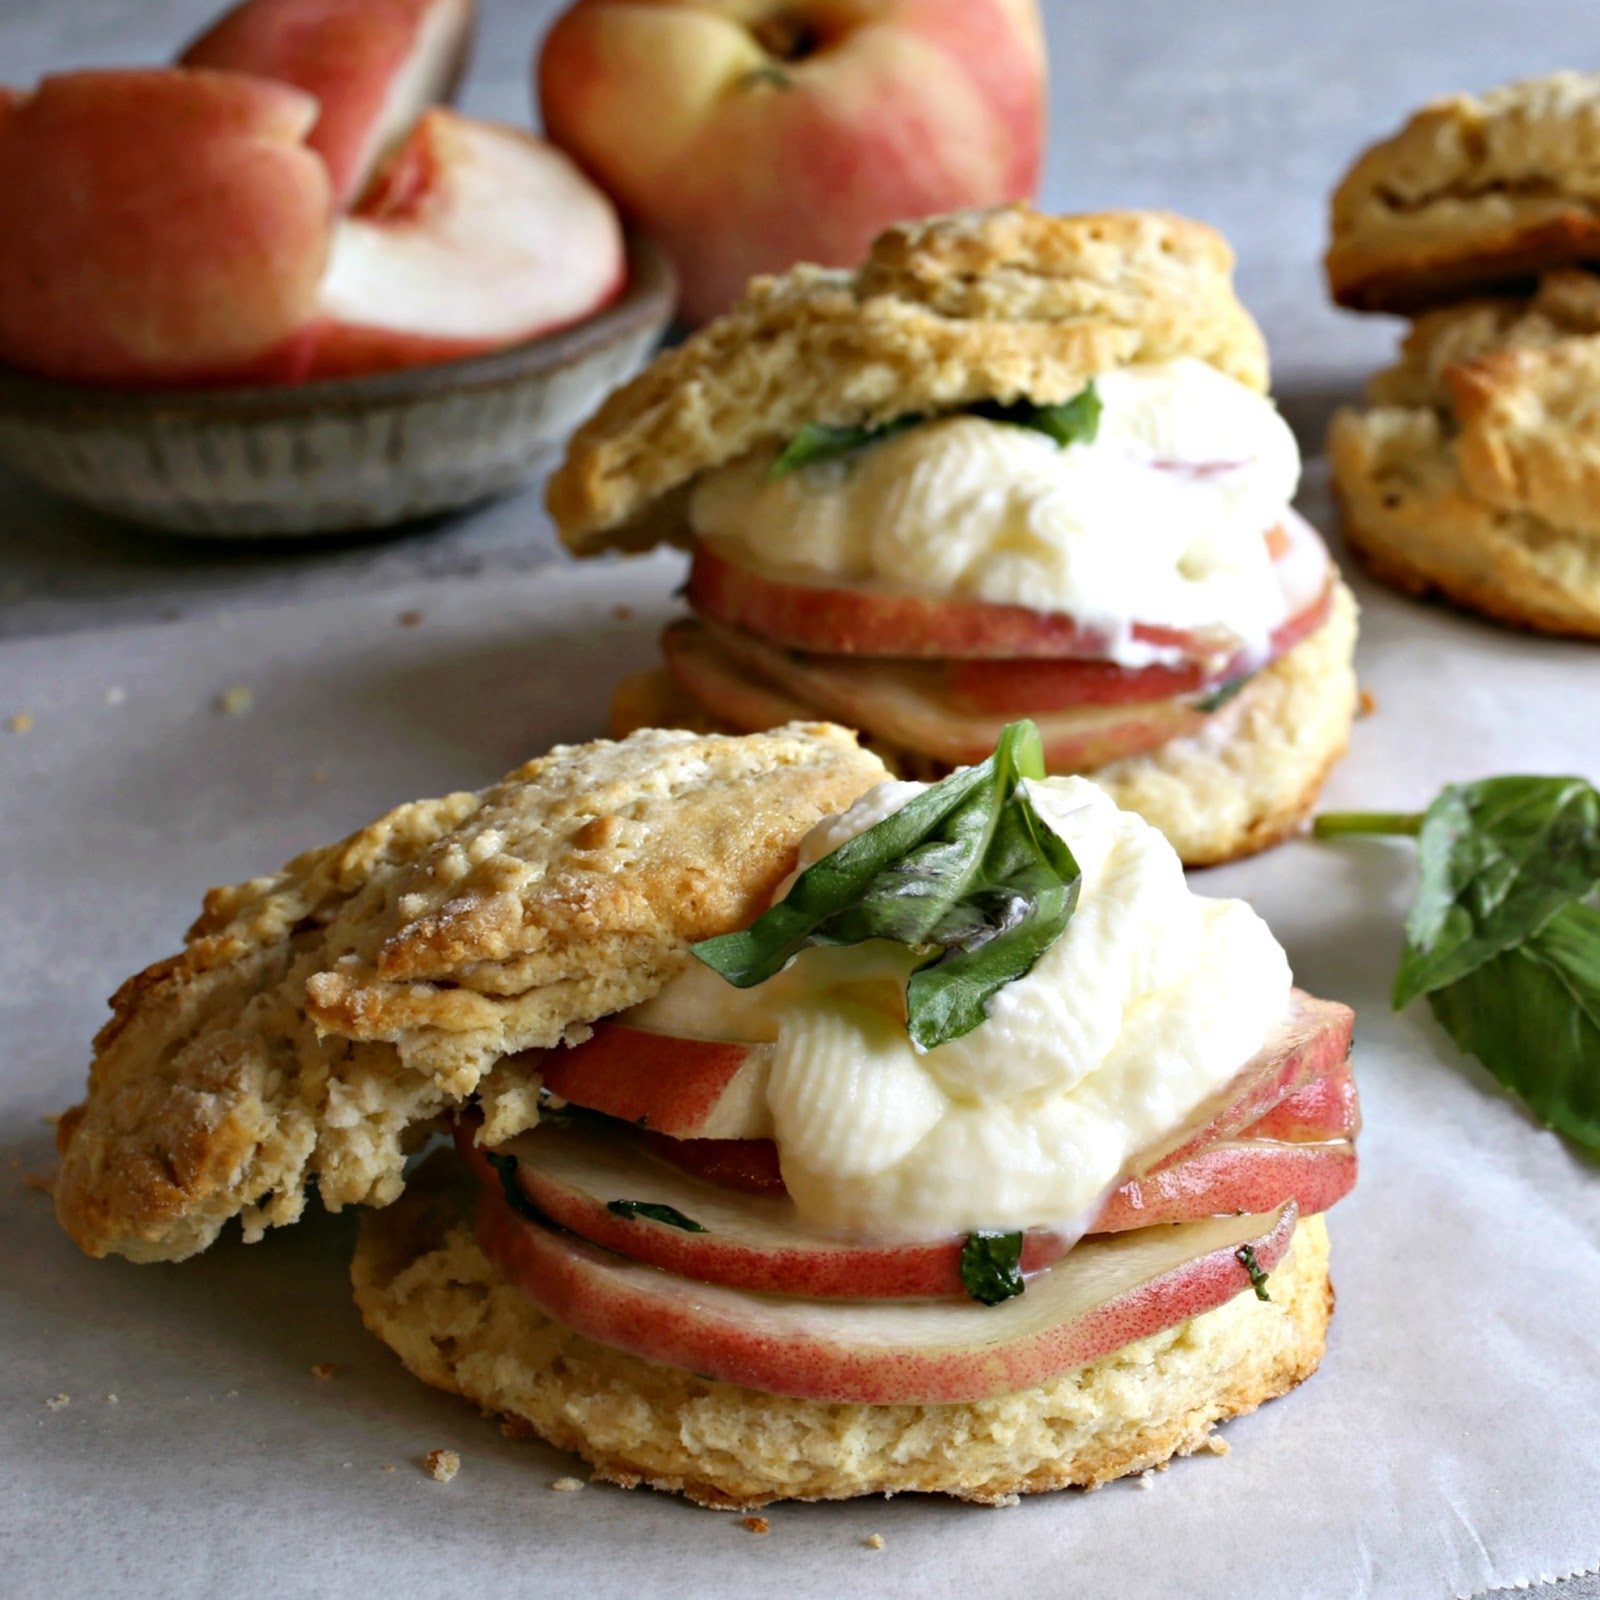 Individual peach shortcakes with sweet buttermilk biscuits and peaches in a honey basil syrup.